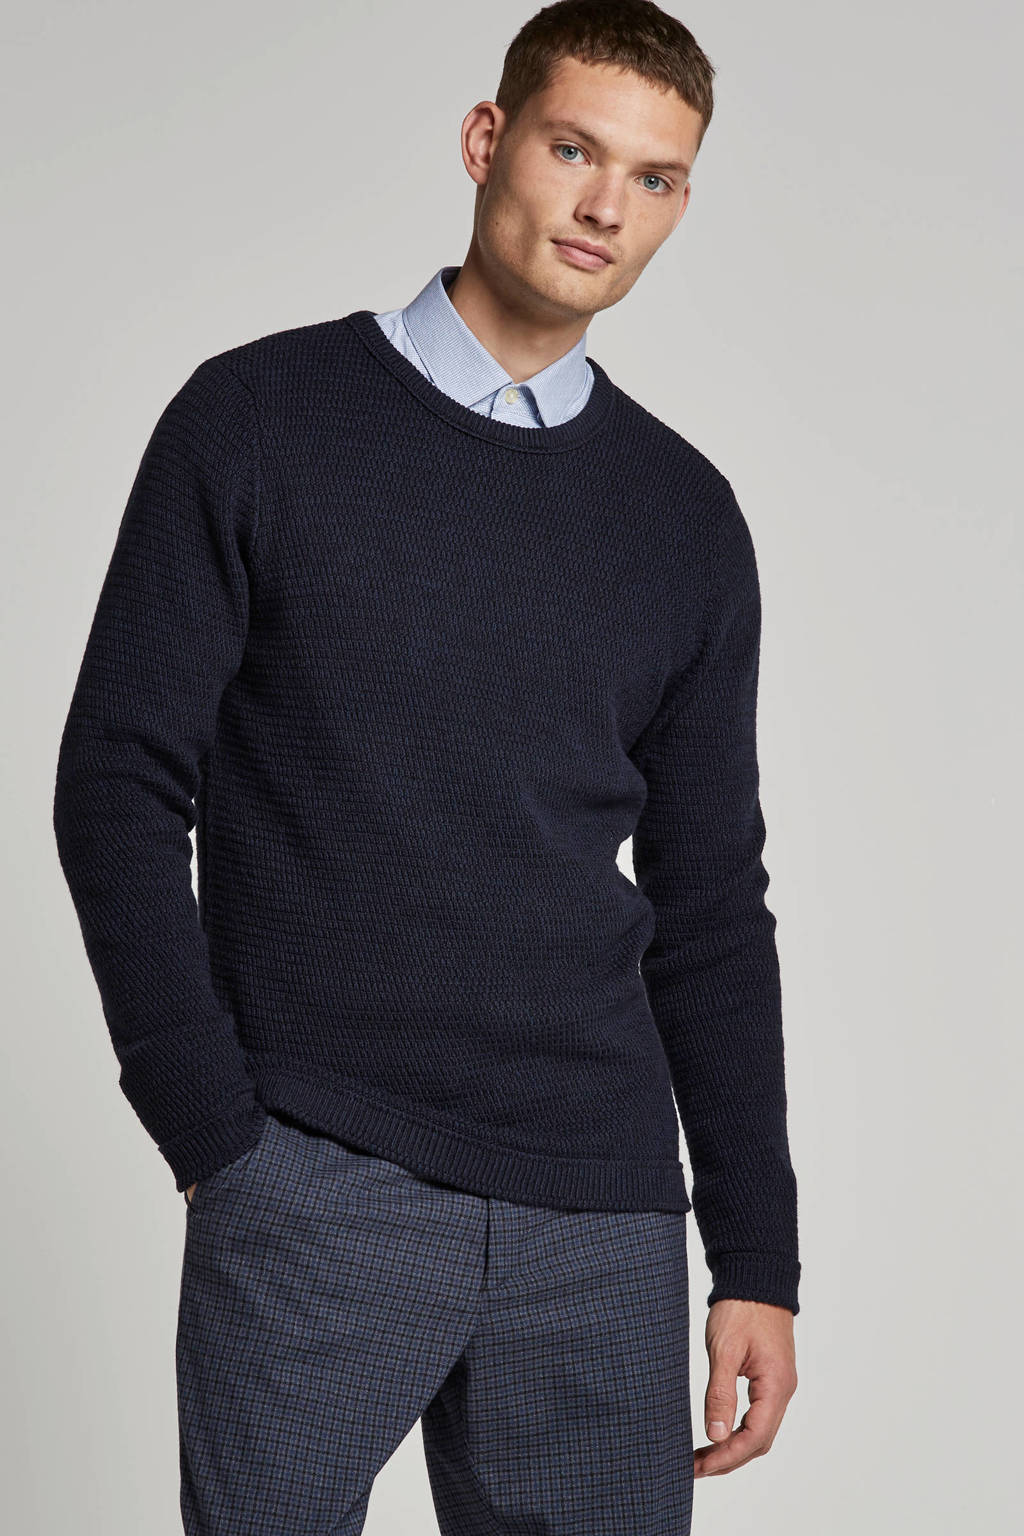 SELECTED HOMME trui donkerblauw, Donkerblauw